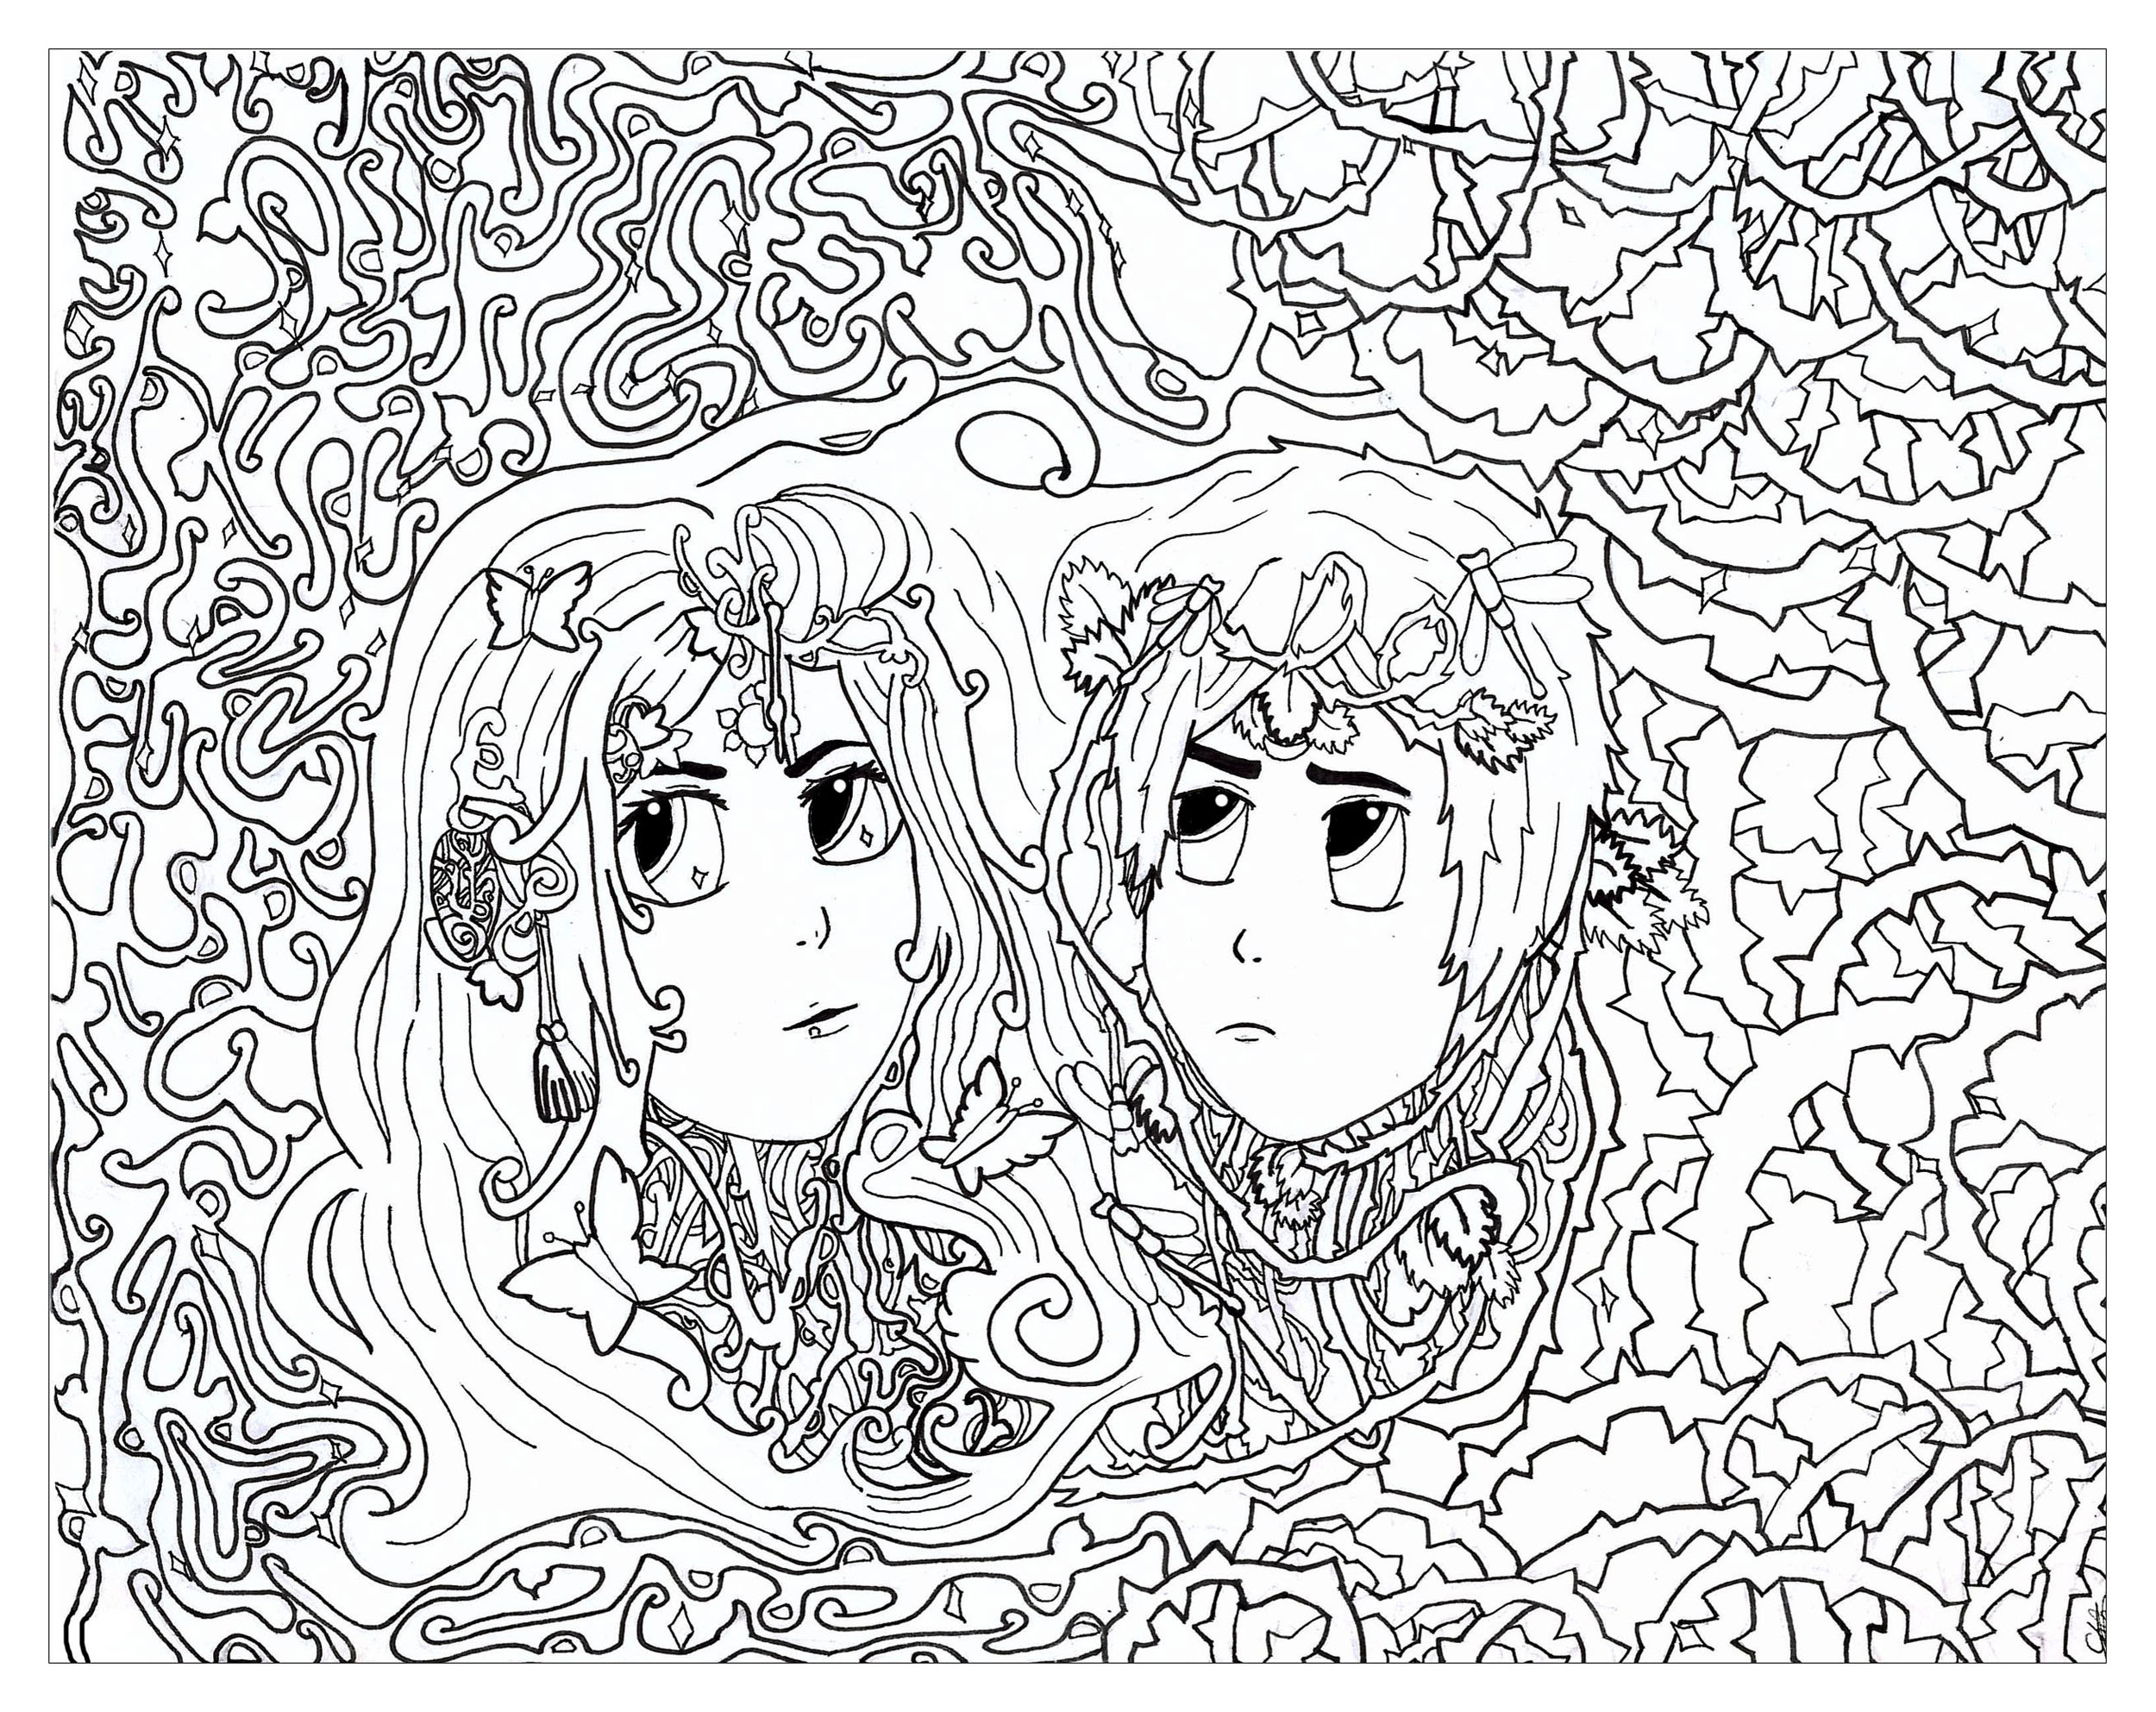 Gemini For Chloe02 Zen And Anti Stress Coloring Pages For